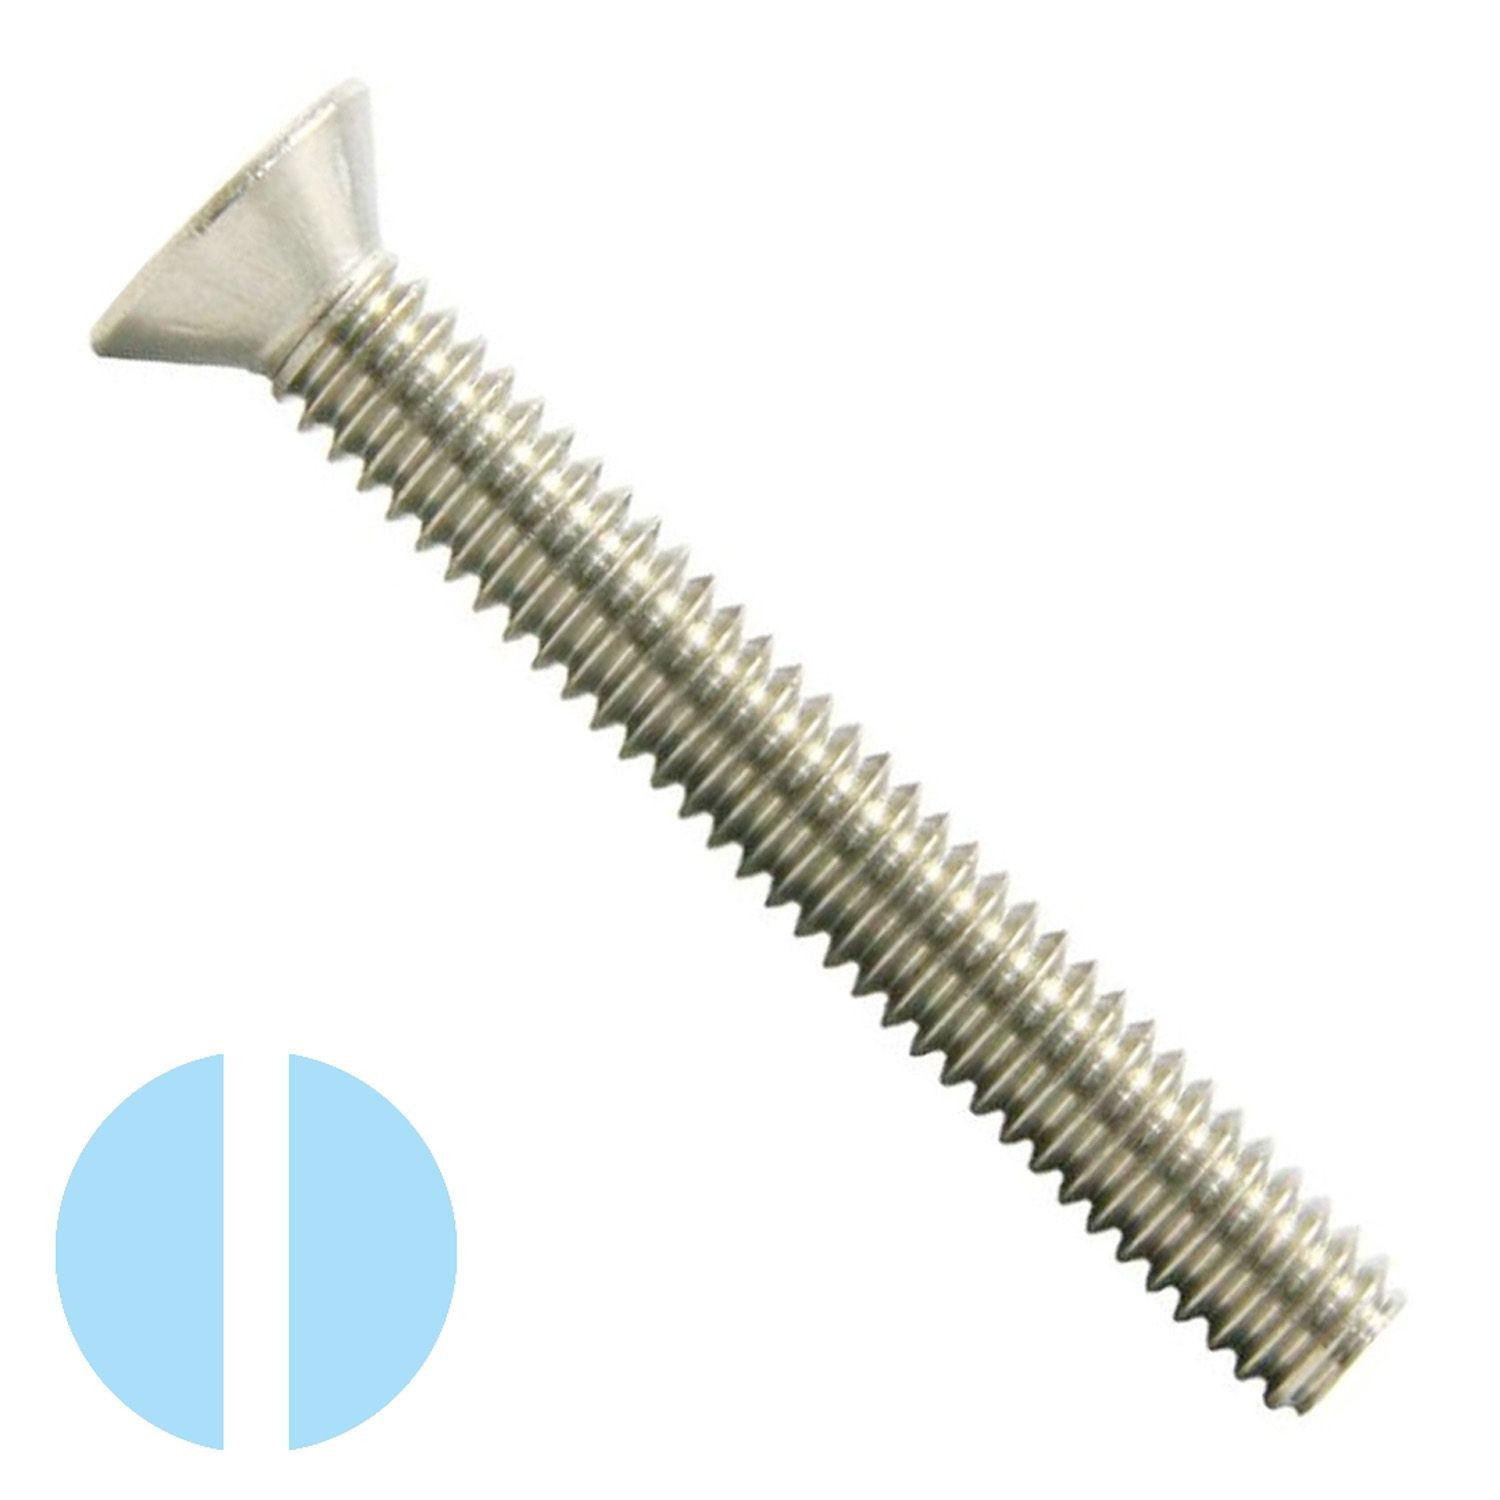 "#10-32 x 1/4"" Stainless Steel Slotted Flat Head Machine Screw 18-8"